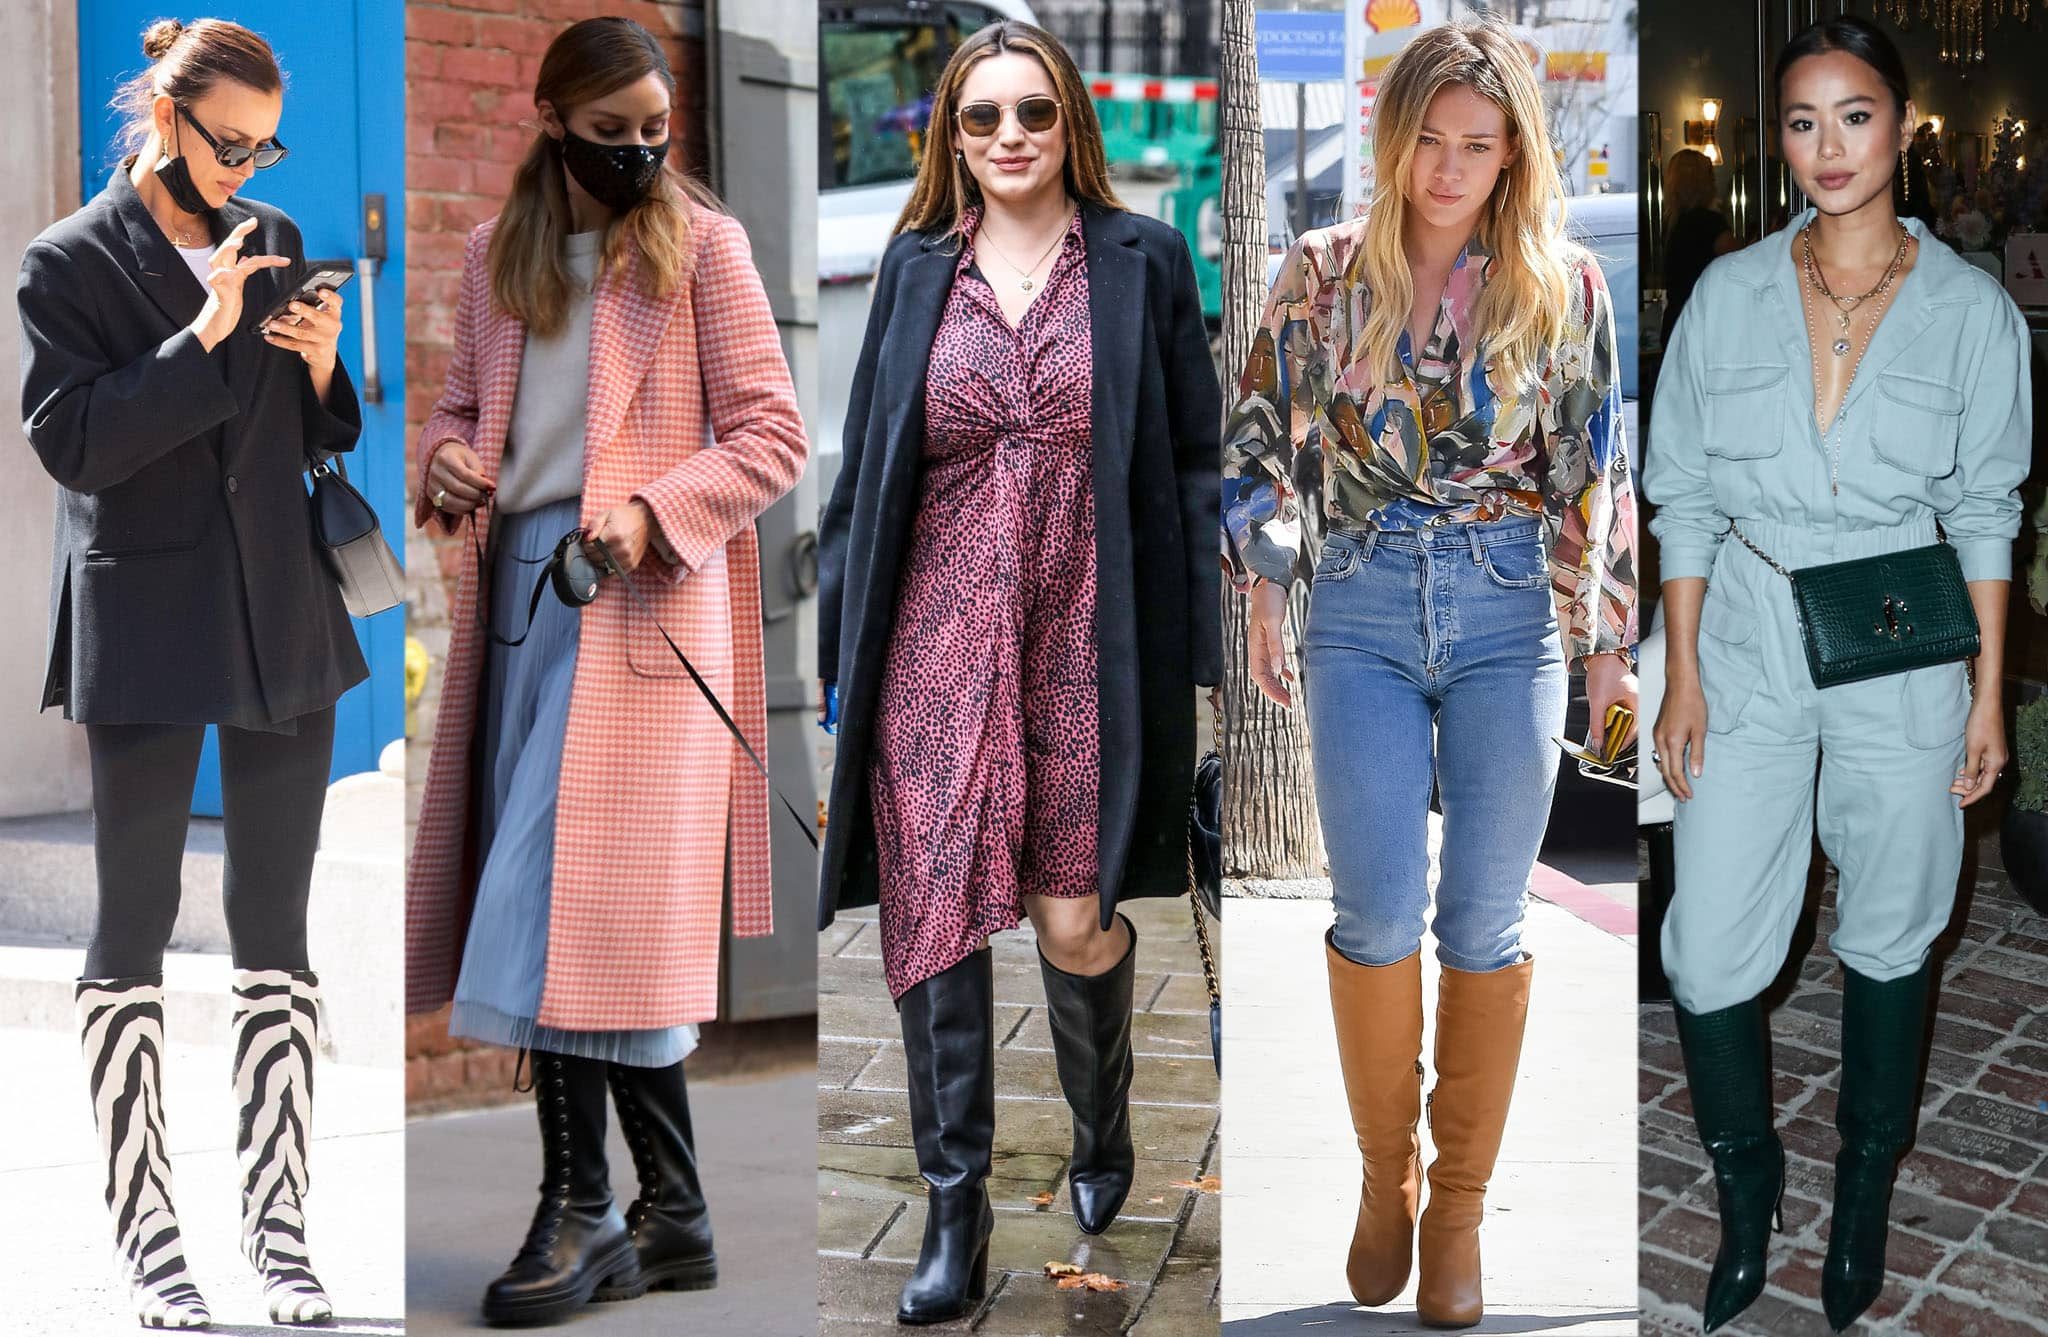 Irina Shayk, Olivia Palermo, Kelly Brook, Hilary Duff, and Jamie Chung show different ways to wear knee-high boots